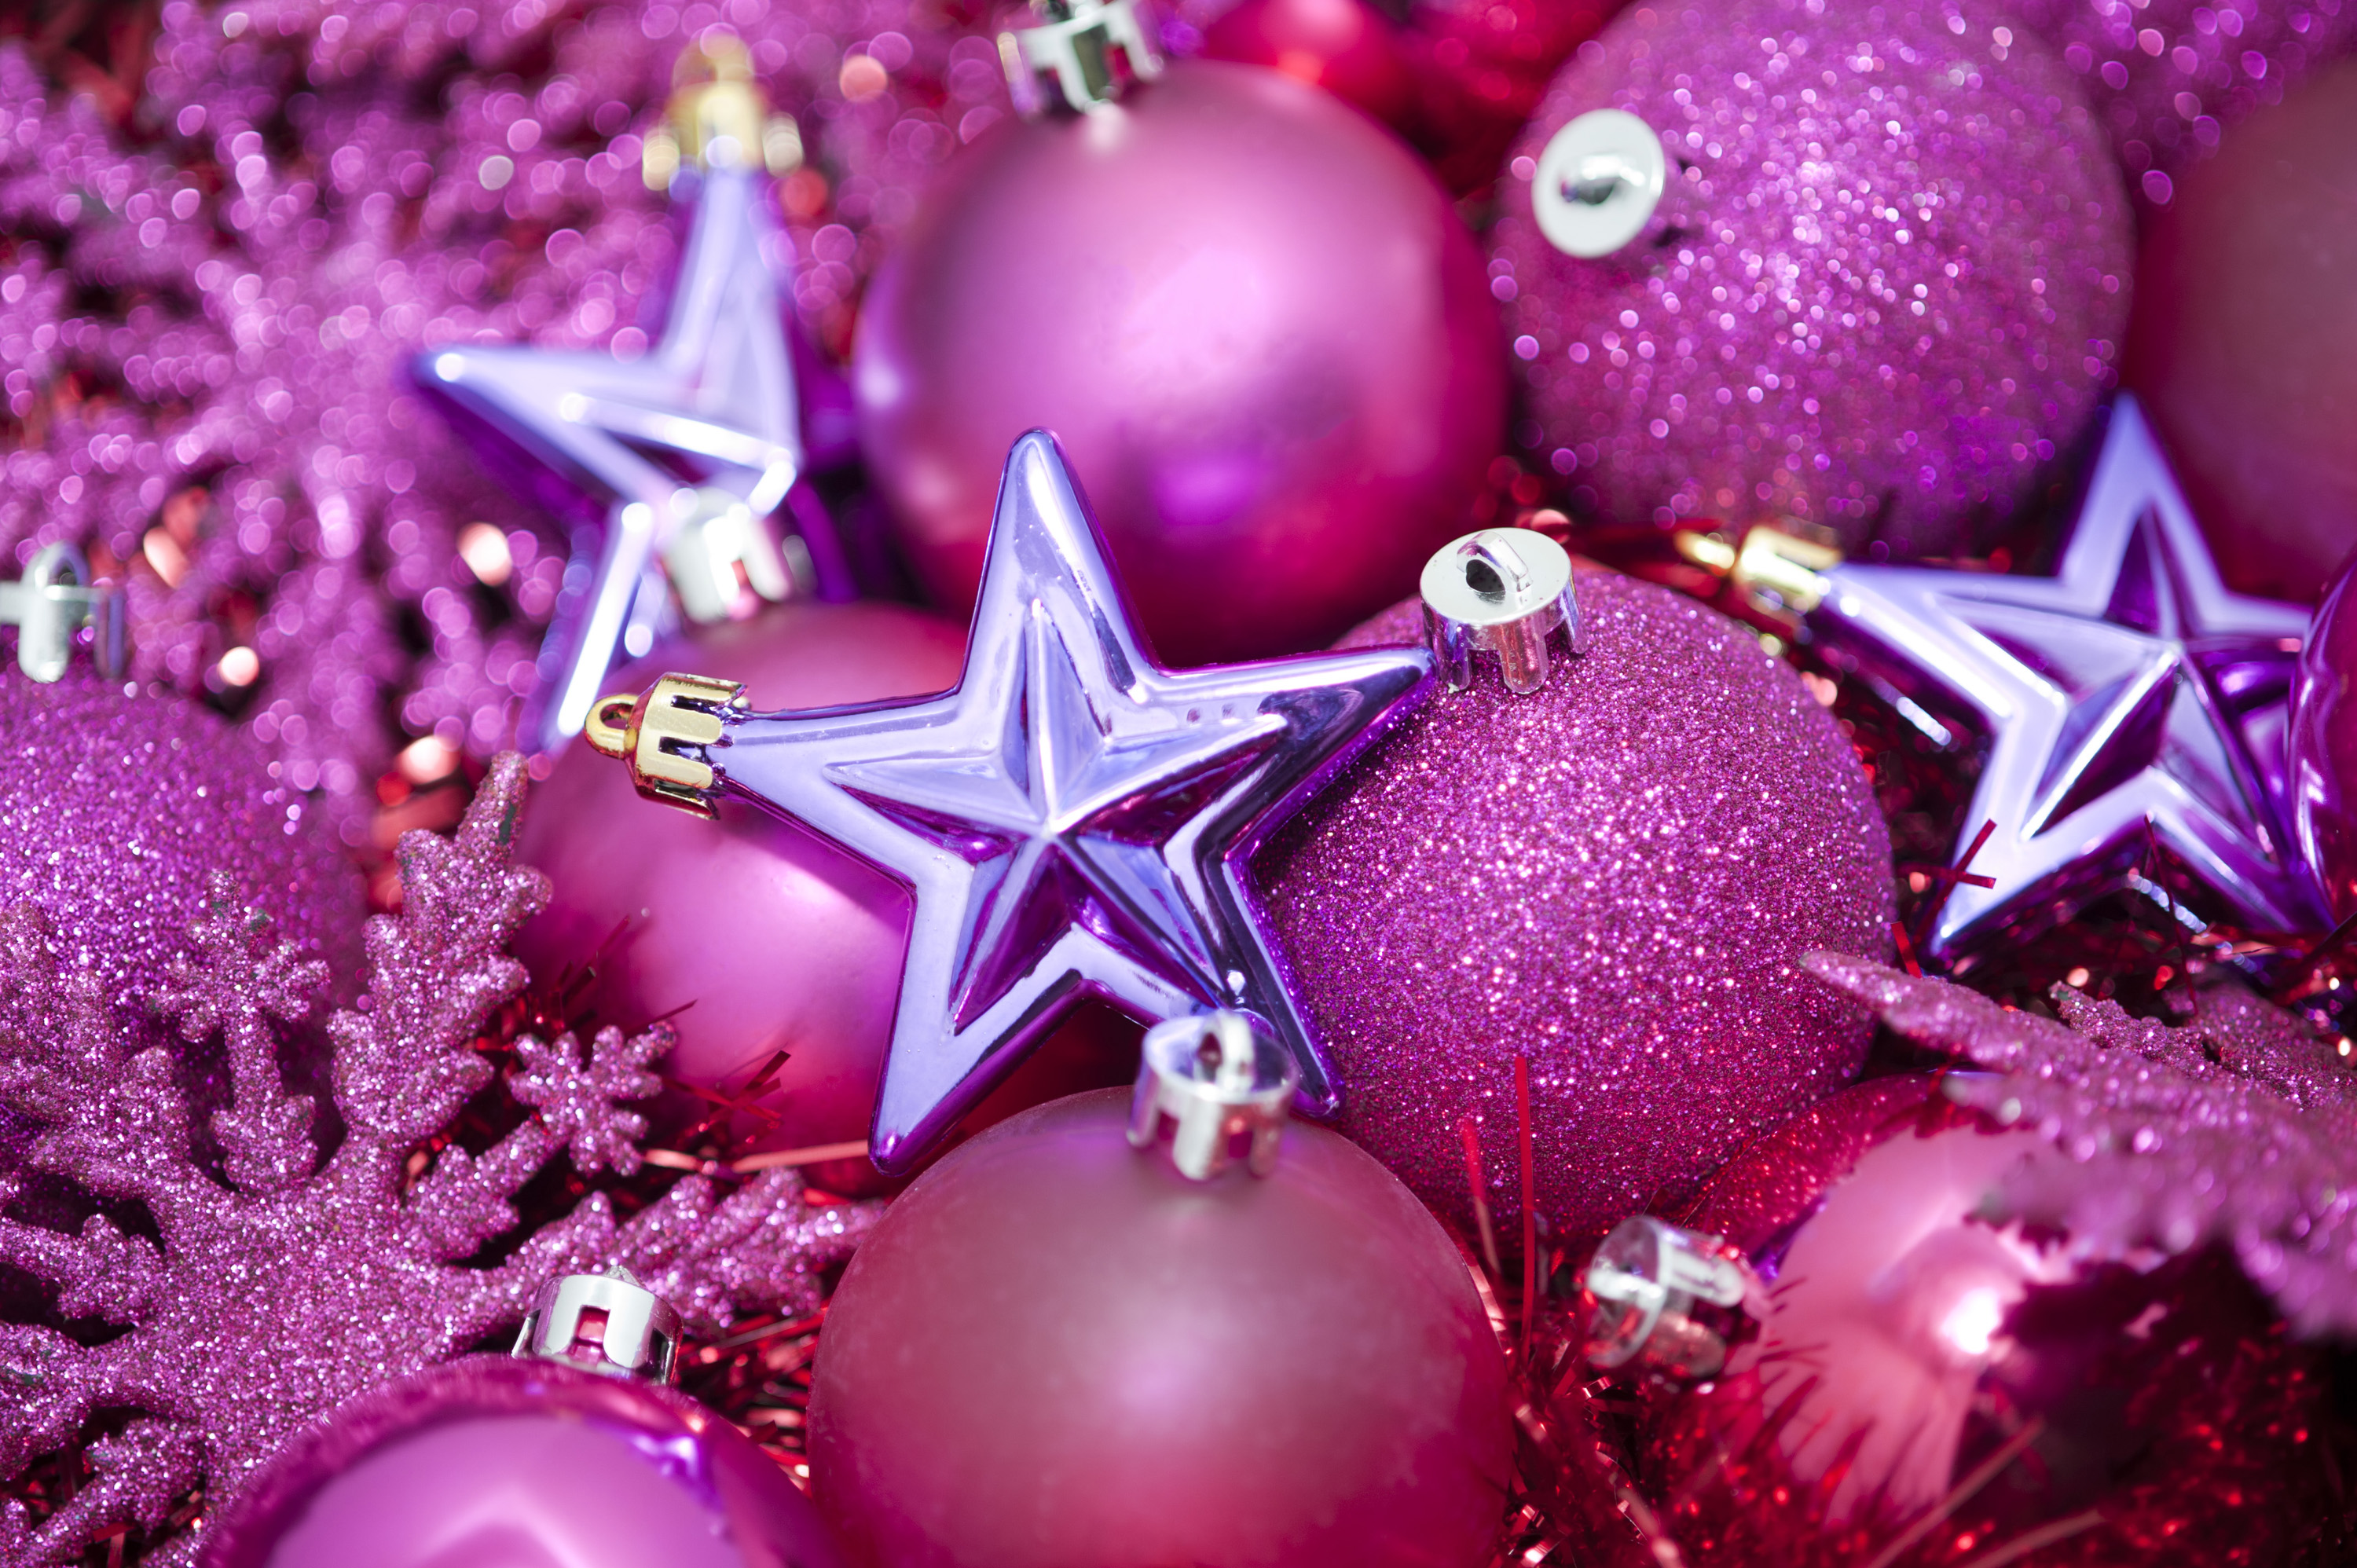 Superb Pink Camo Christmas Ornaments Part - 12: A Festive Holiday Background With Pink Coloured Glittery Christmas Tree  Ornaments On A Bed Of Sparkling